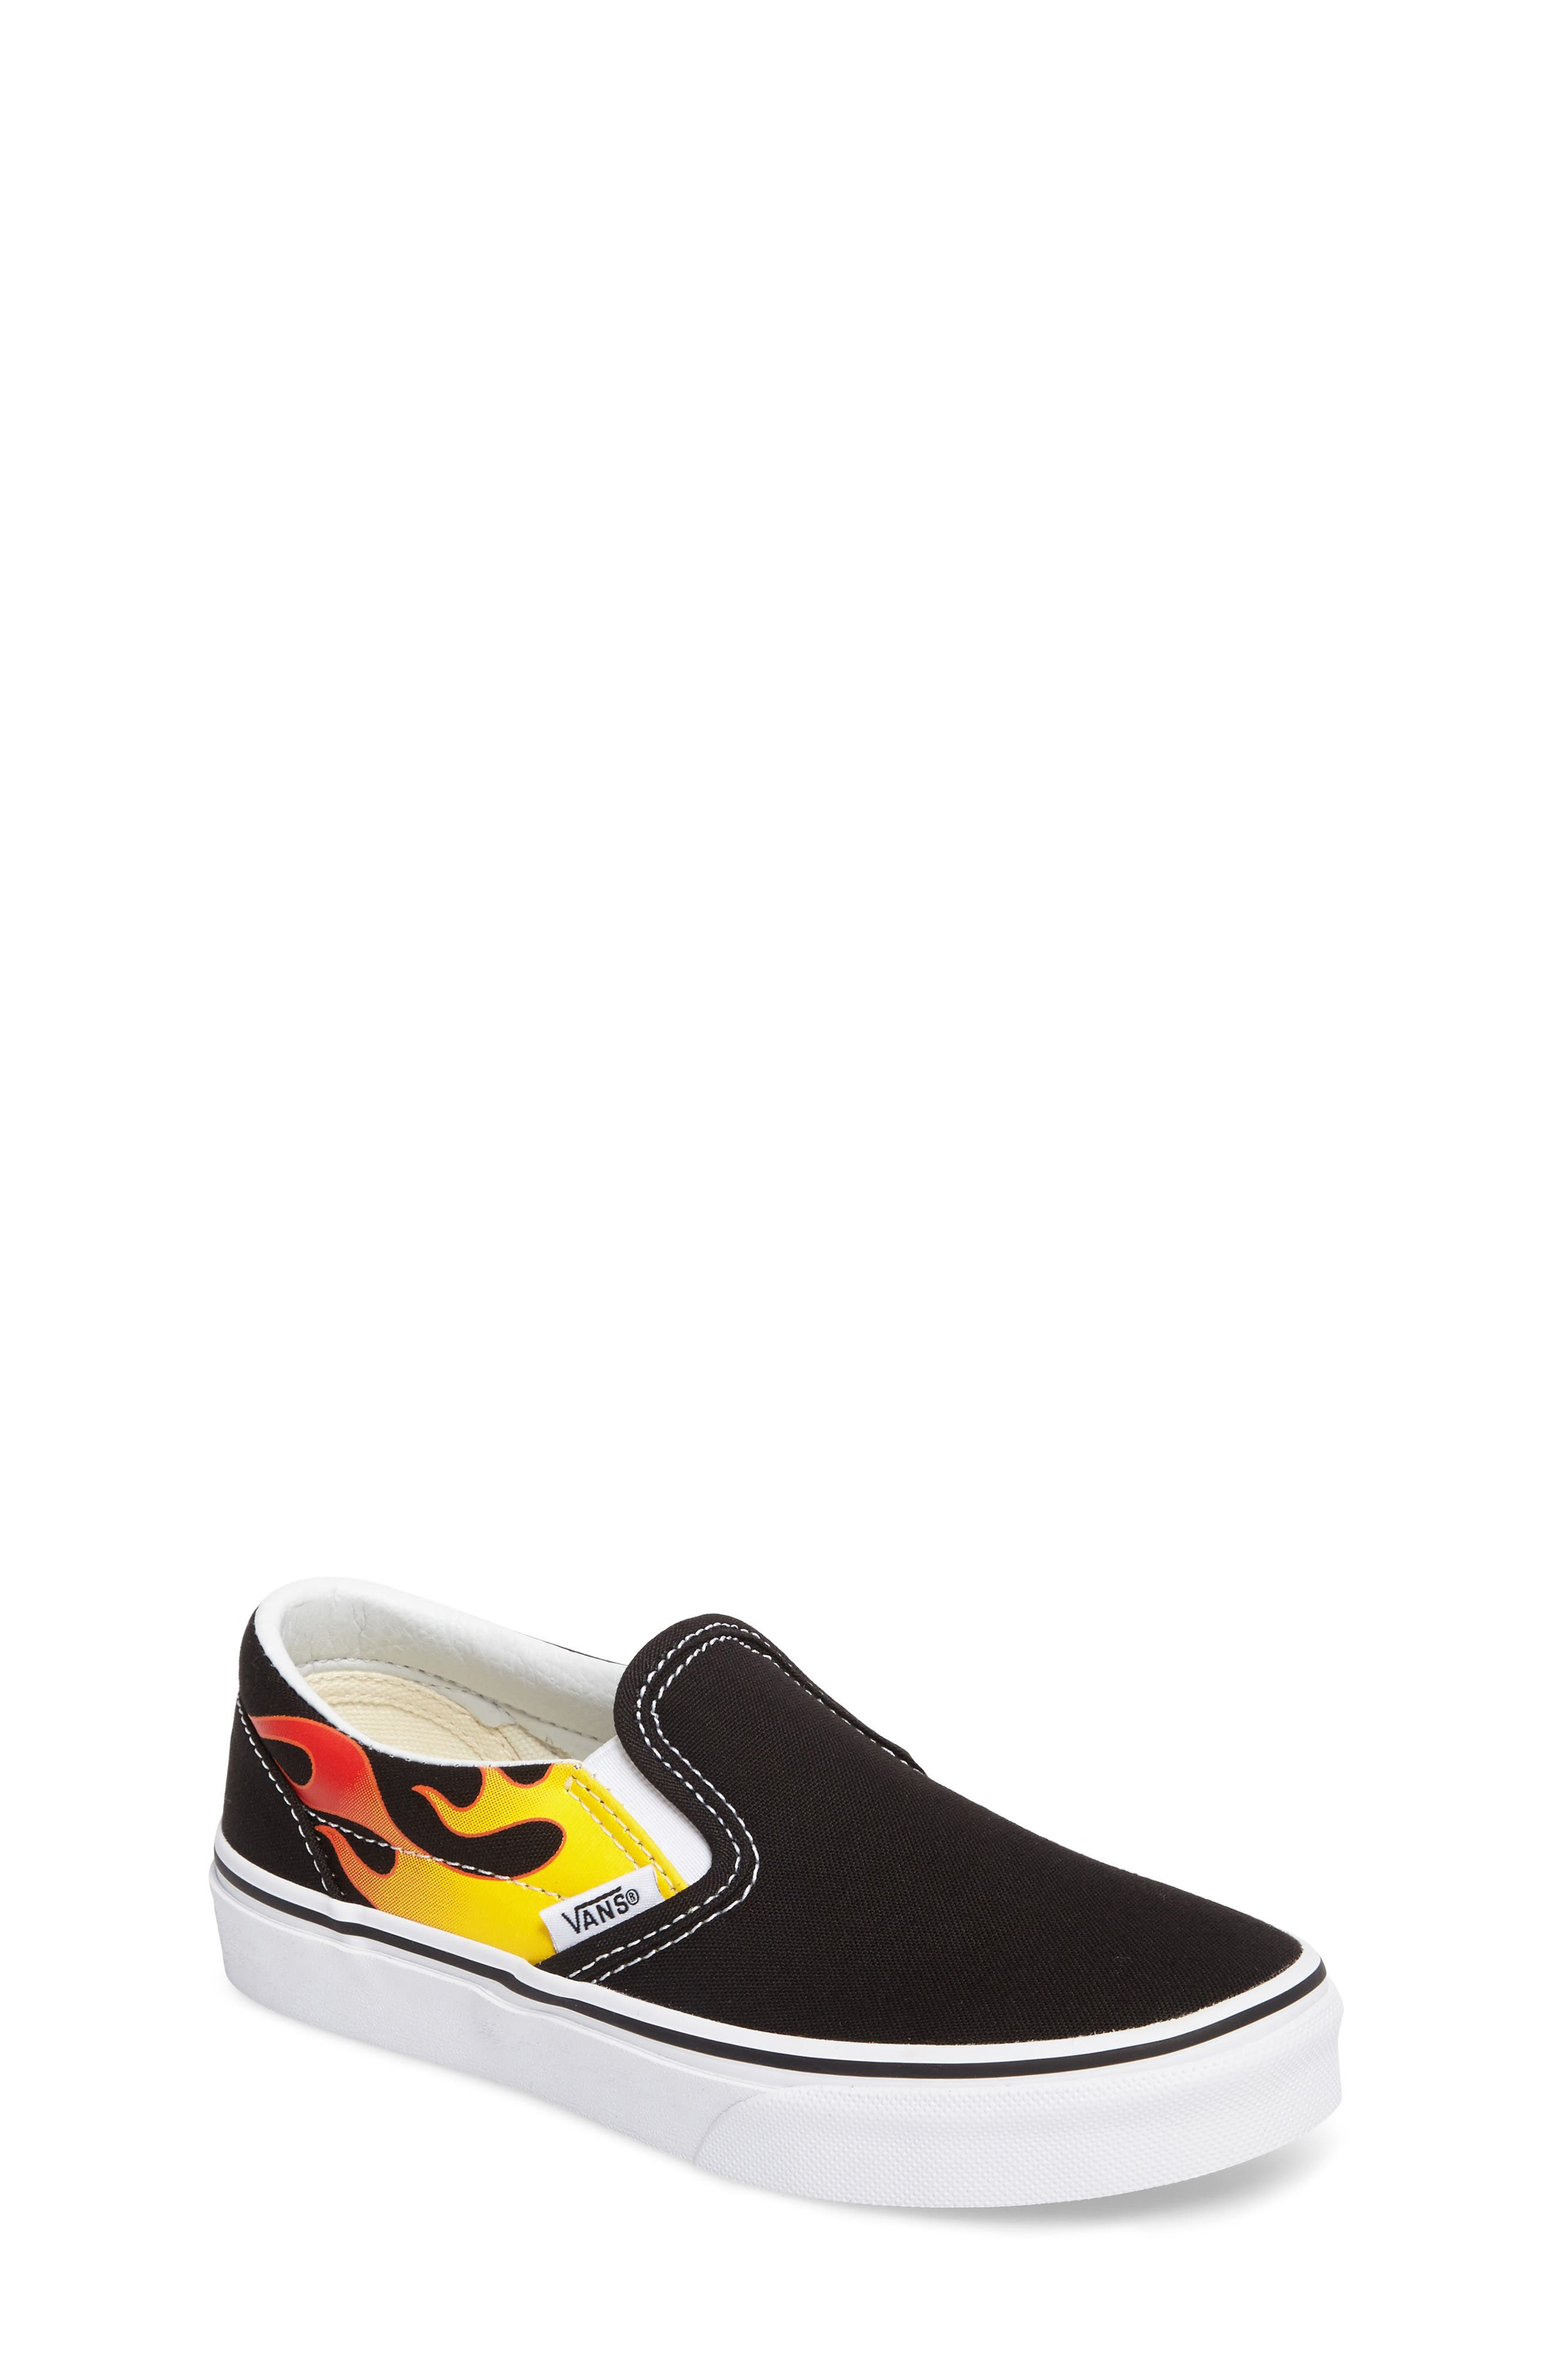 Flame Classic Slip-On Sneaker,                         Main,                         color, 002